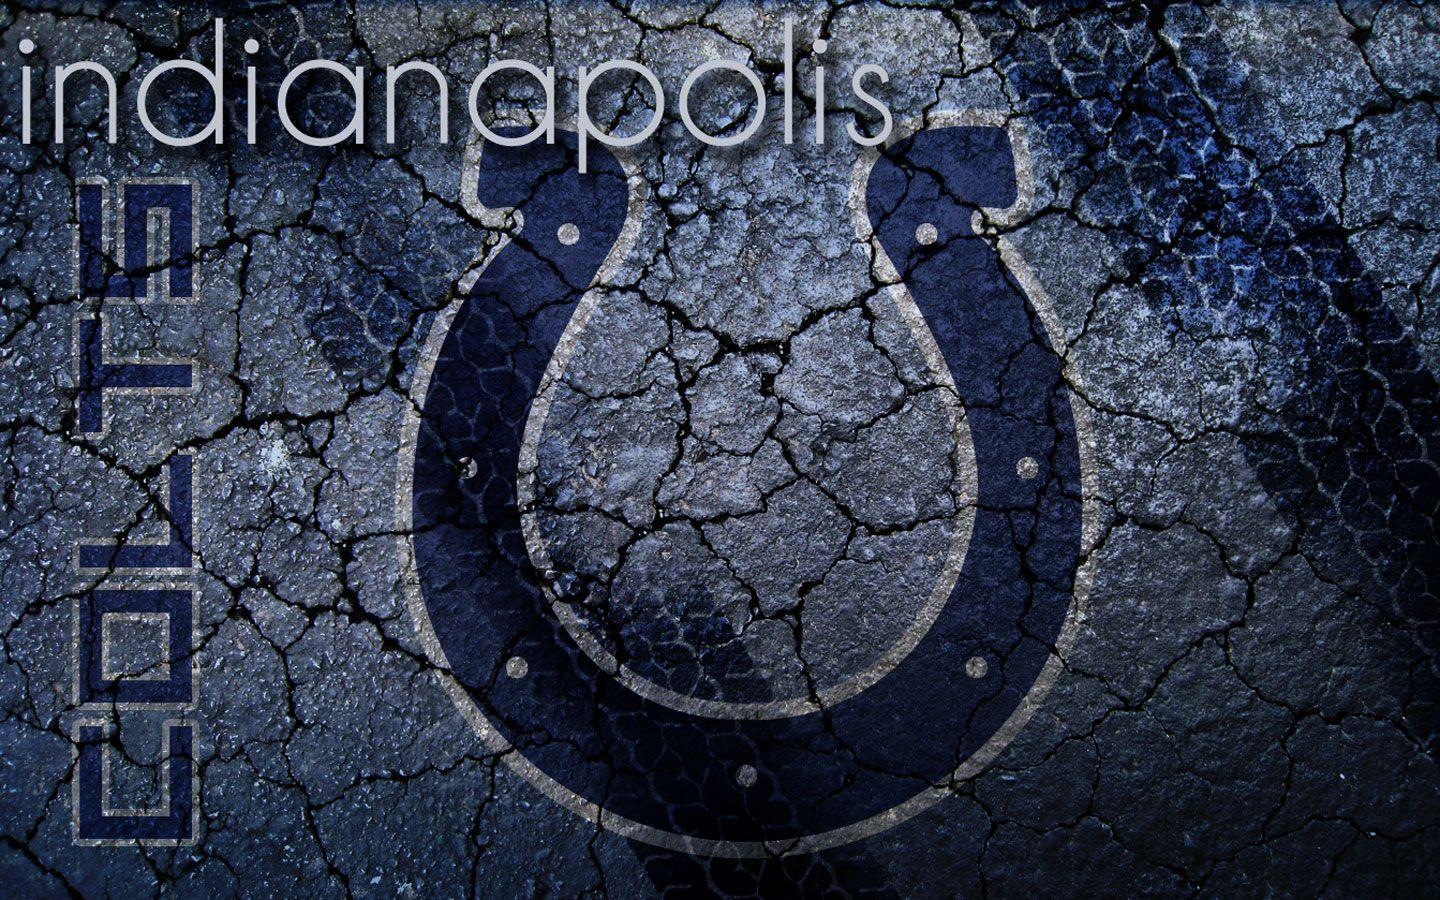 WallpaperMISC - Indianapolis Colts HD Wallpaper 20 - 1440 X 900 Free ...